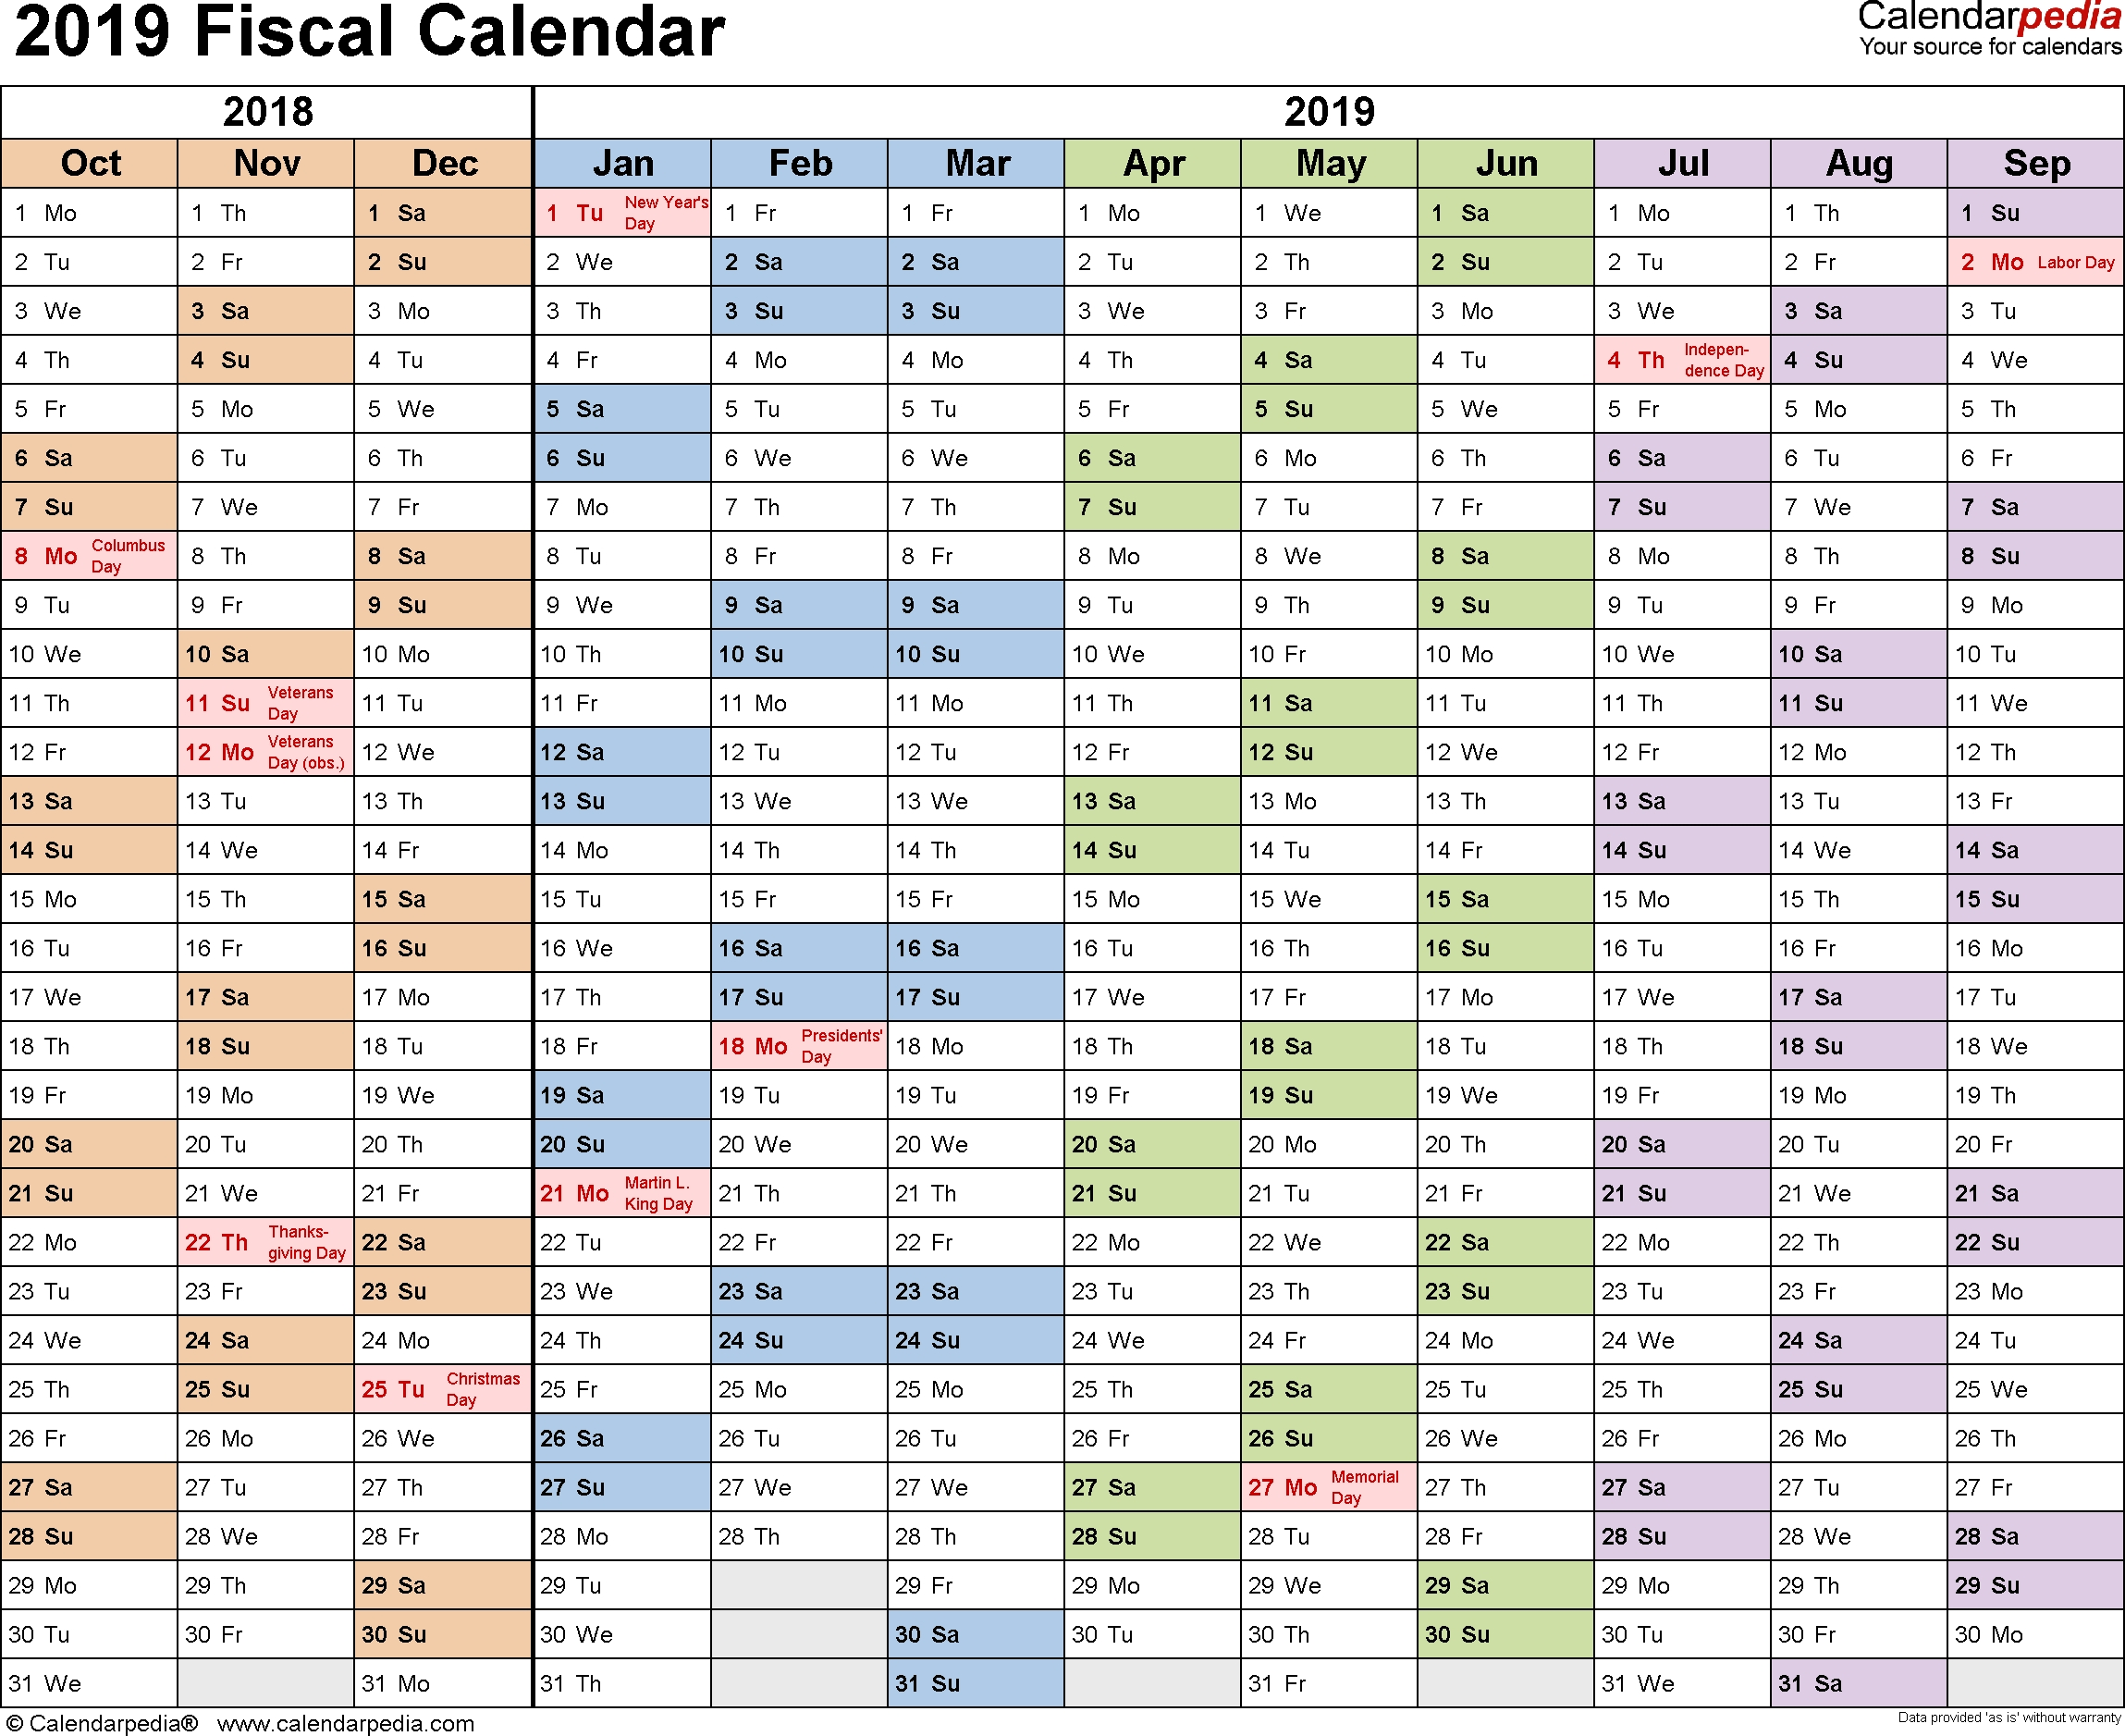 Fiscal Calendars 2019 - Free Printable Word Templates intended for Which Week In Fincnaicl Calendar Is It